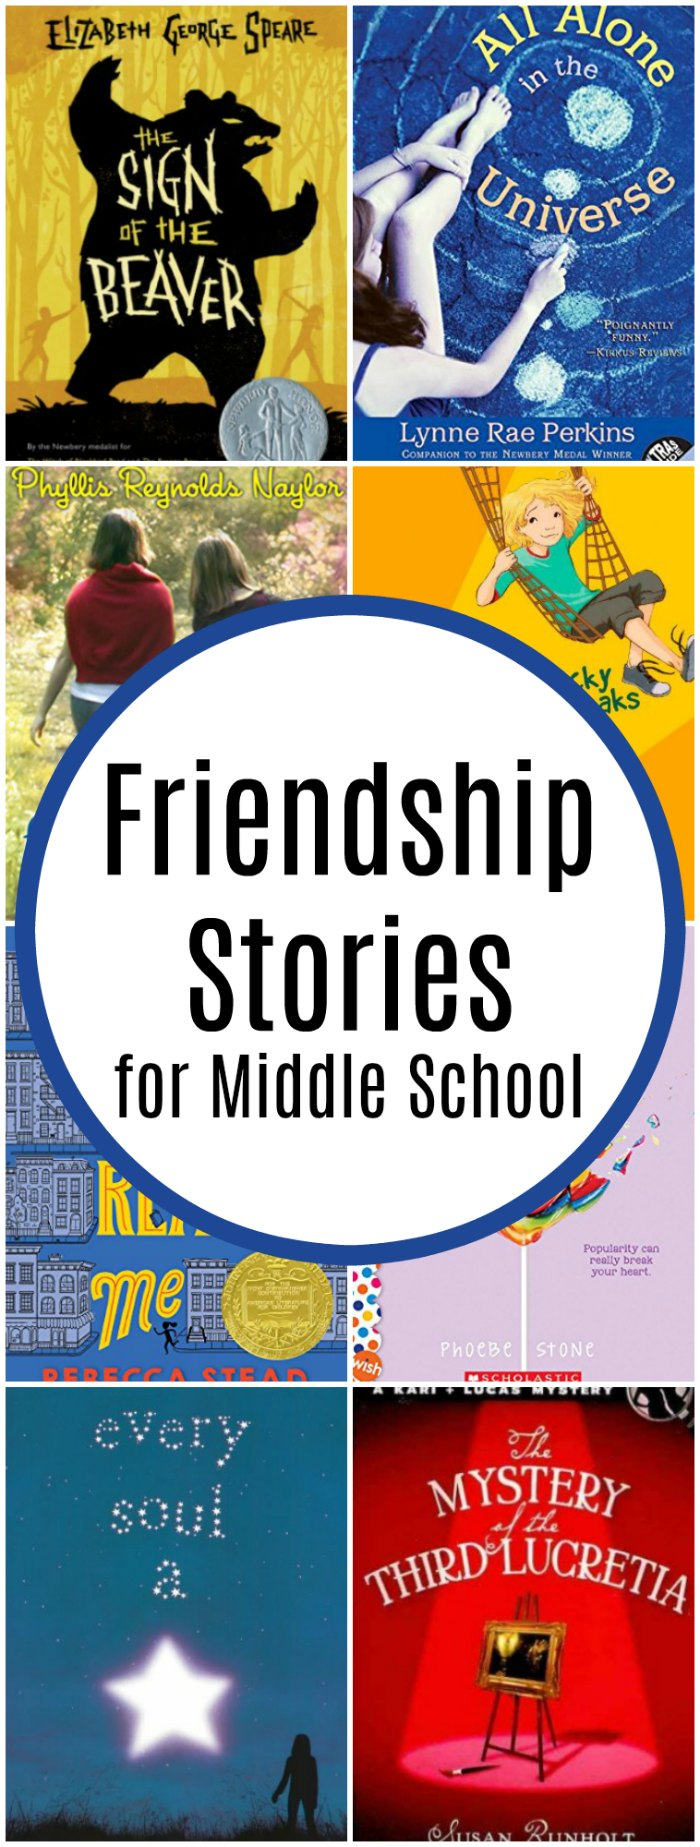 More Friendship Stories and Books about Friendship for Middle Schoolers | Mommy Evolution